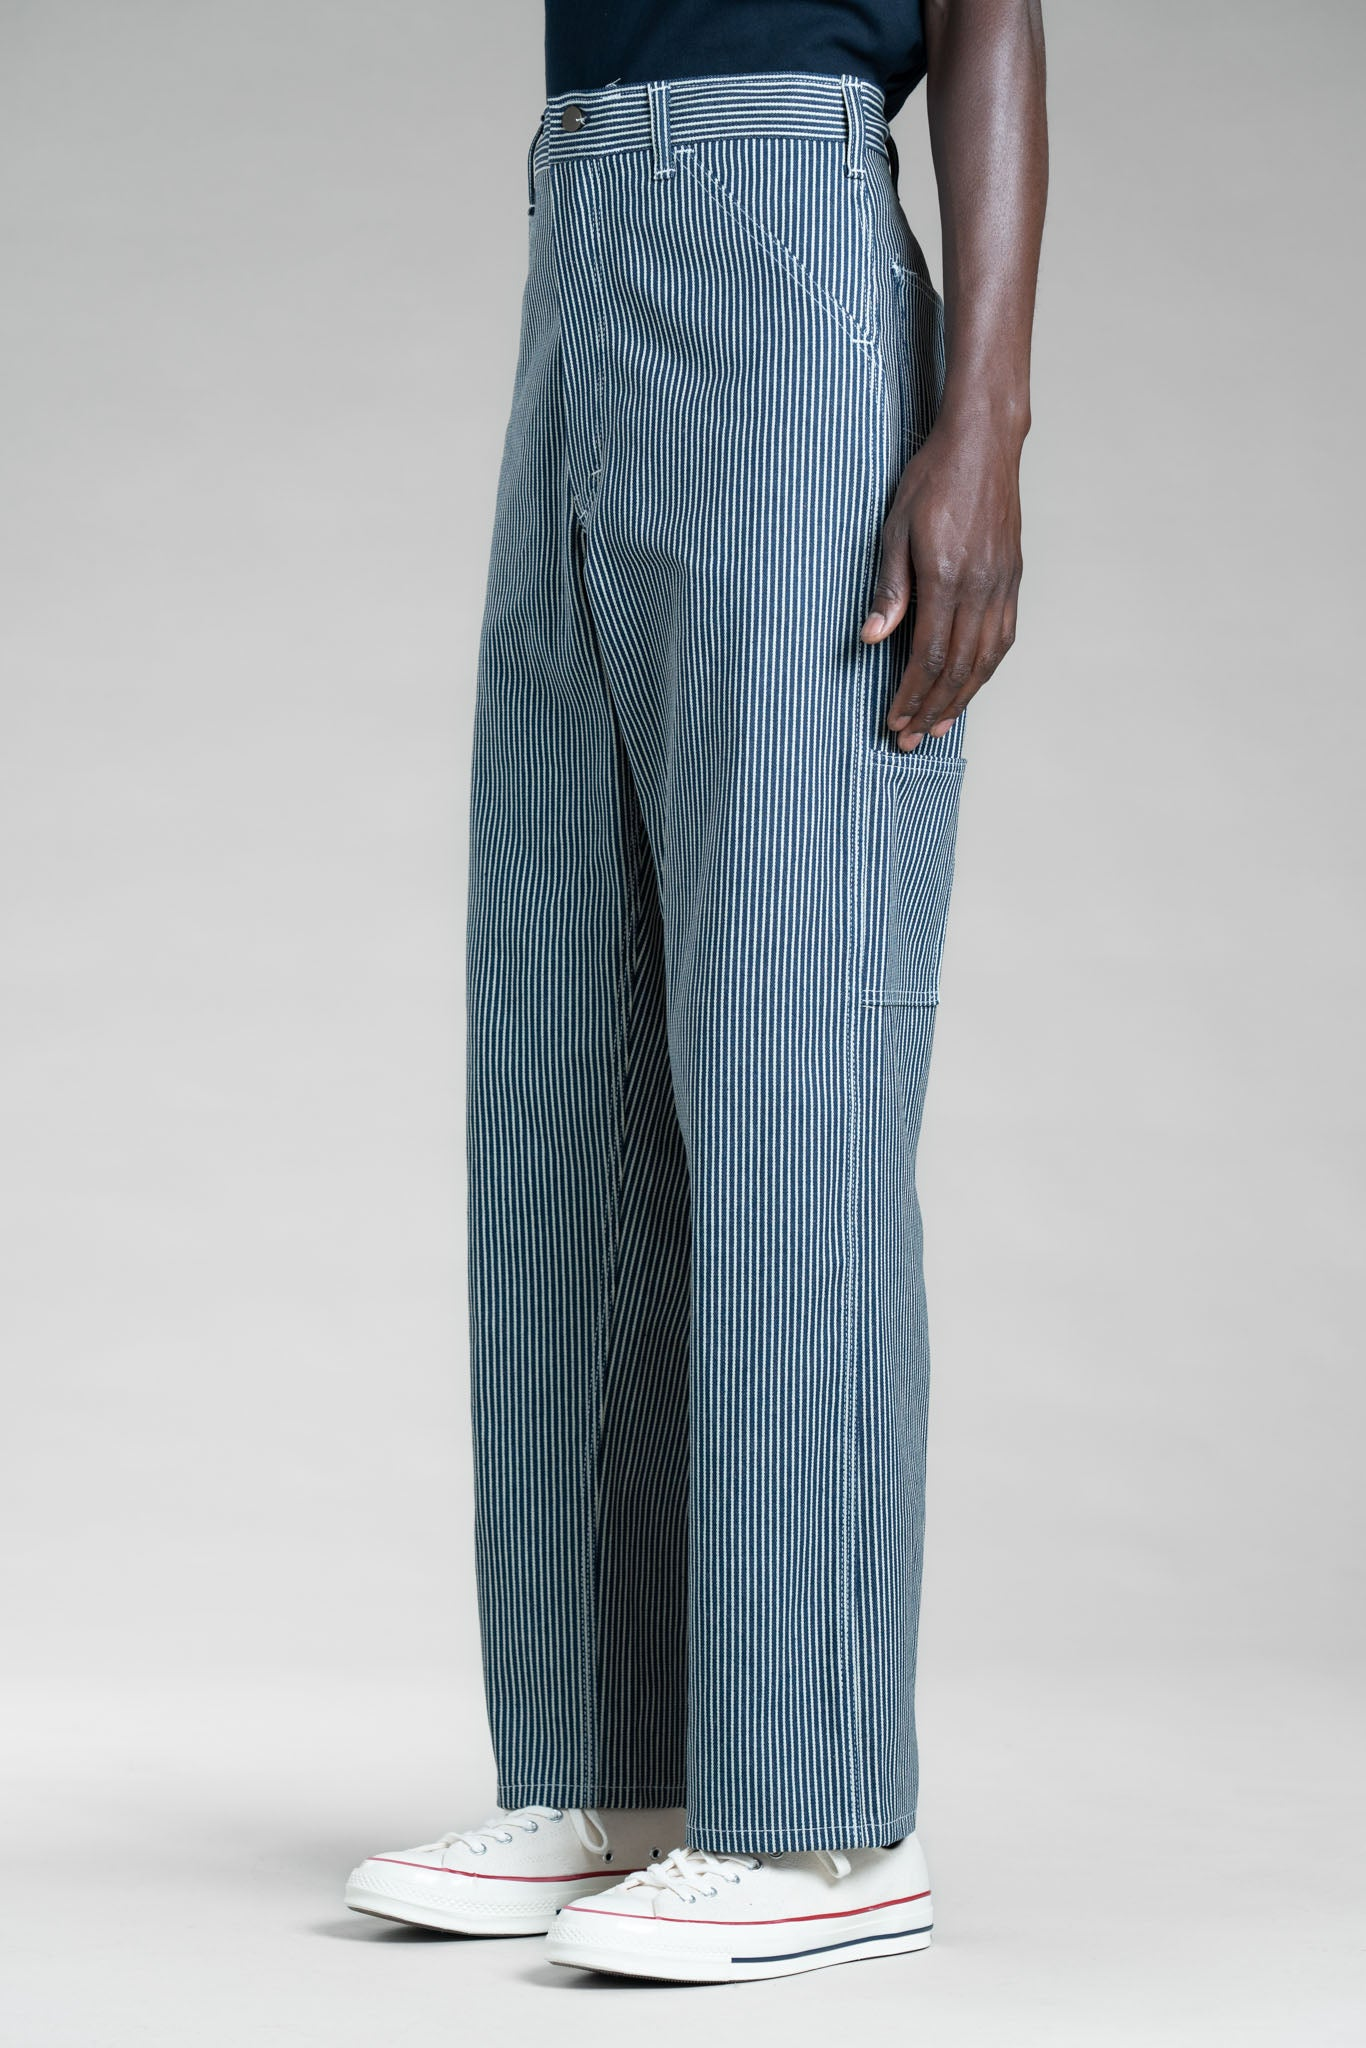 OG Painter Pant (Hickory Stripe) - Stan Ray